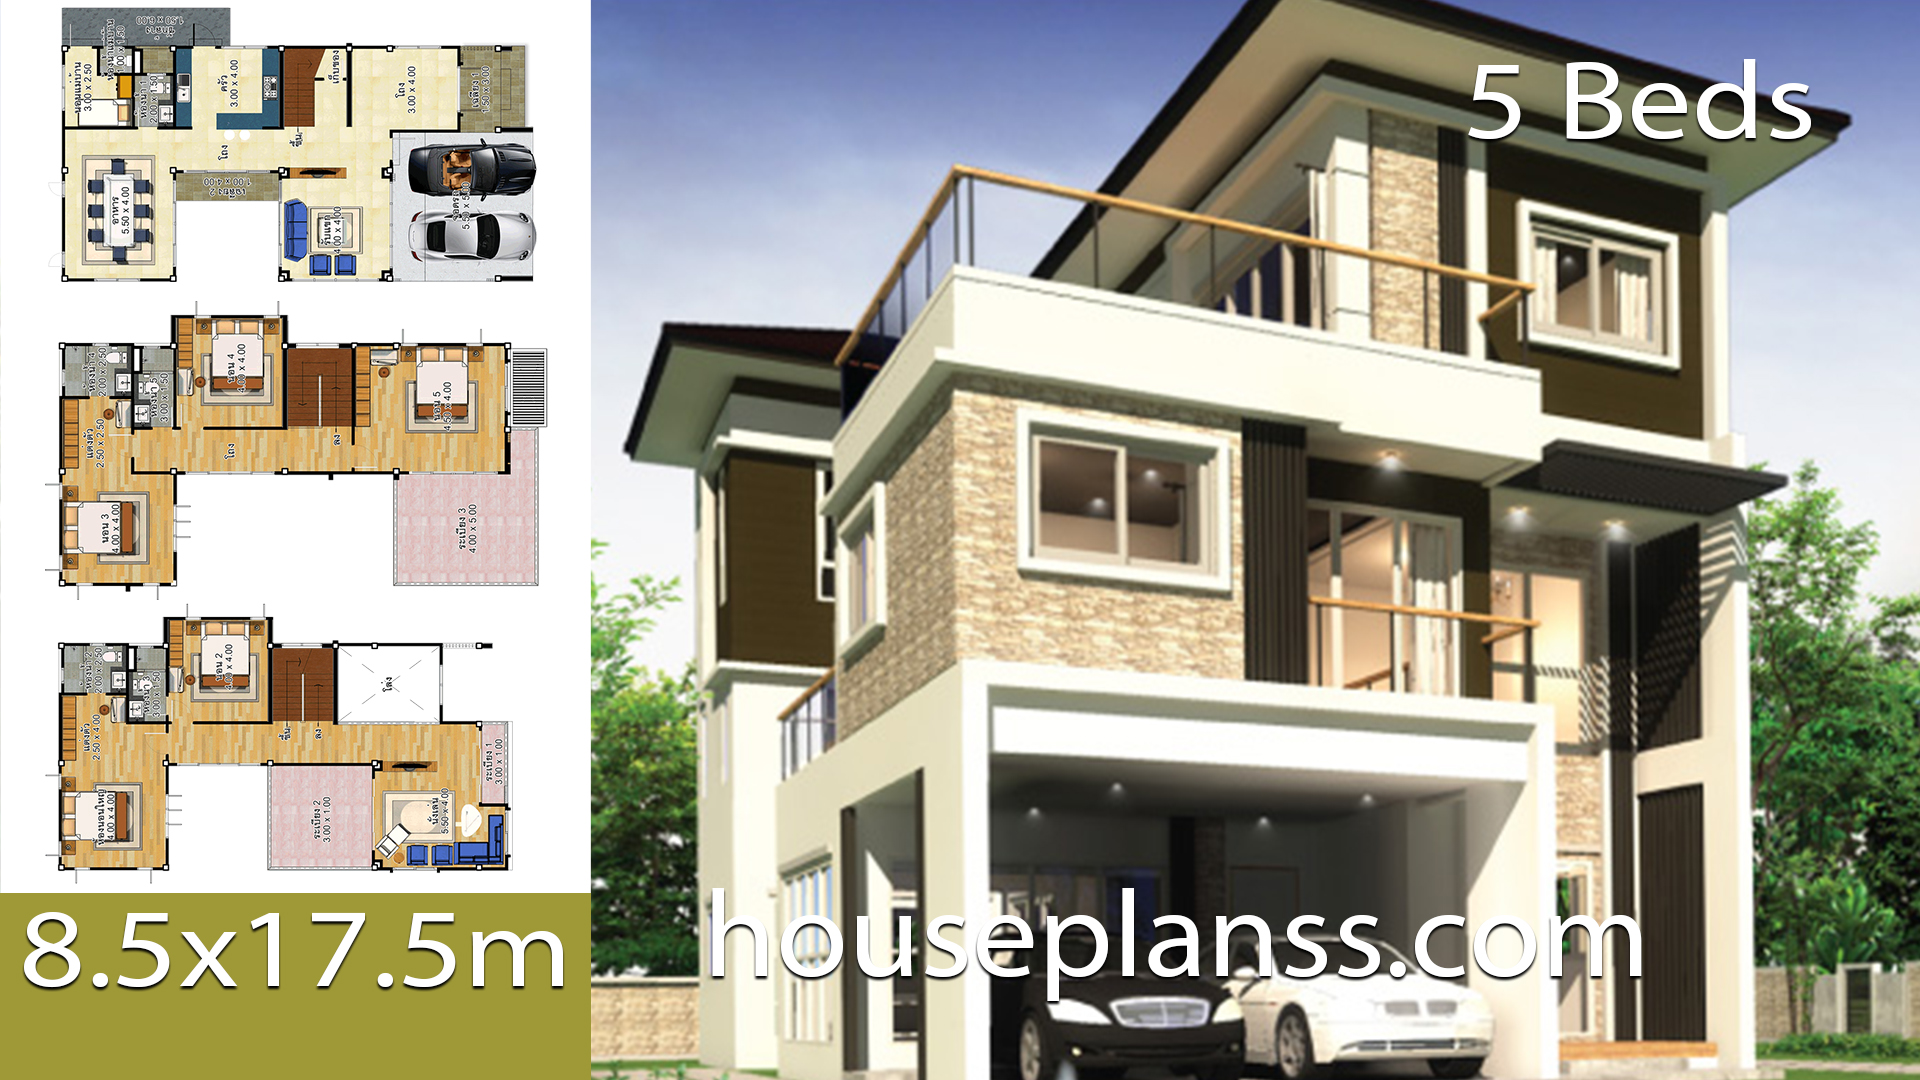 House design idea 8.5×17.5 with 5 bedrooms